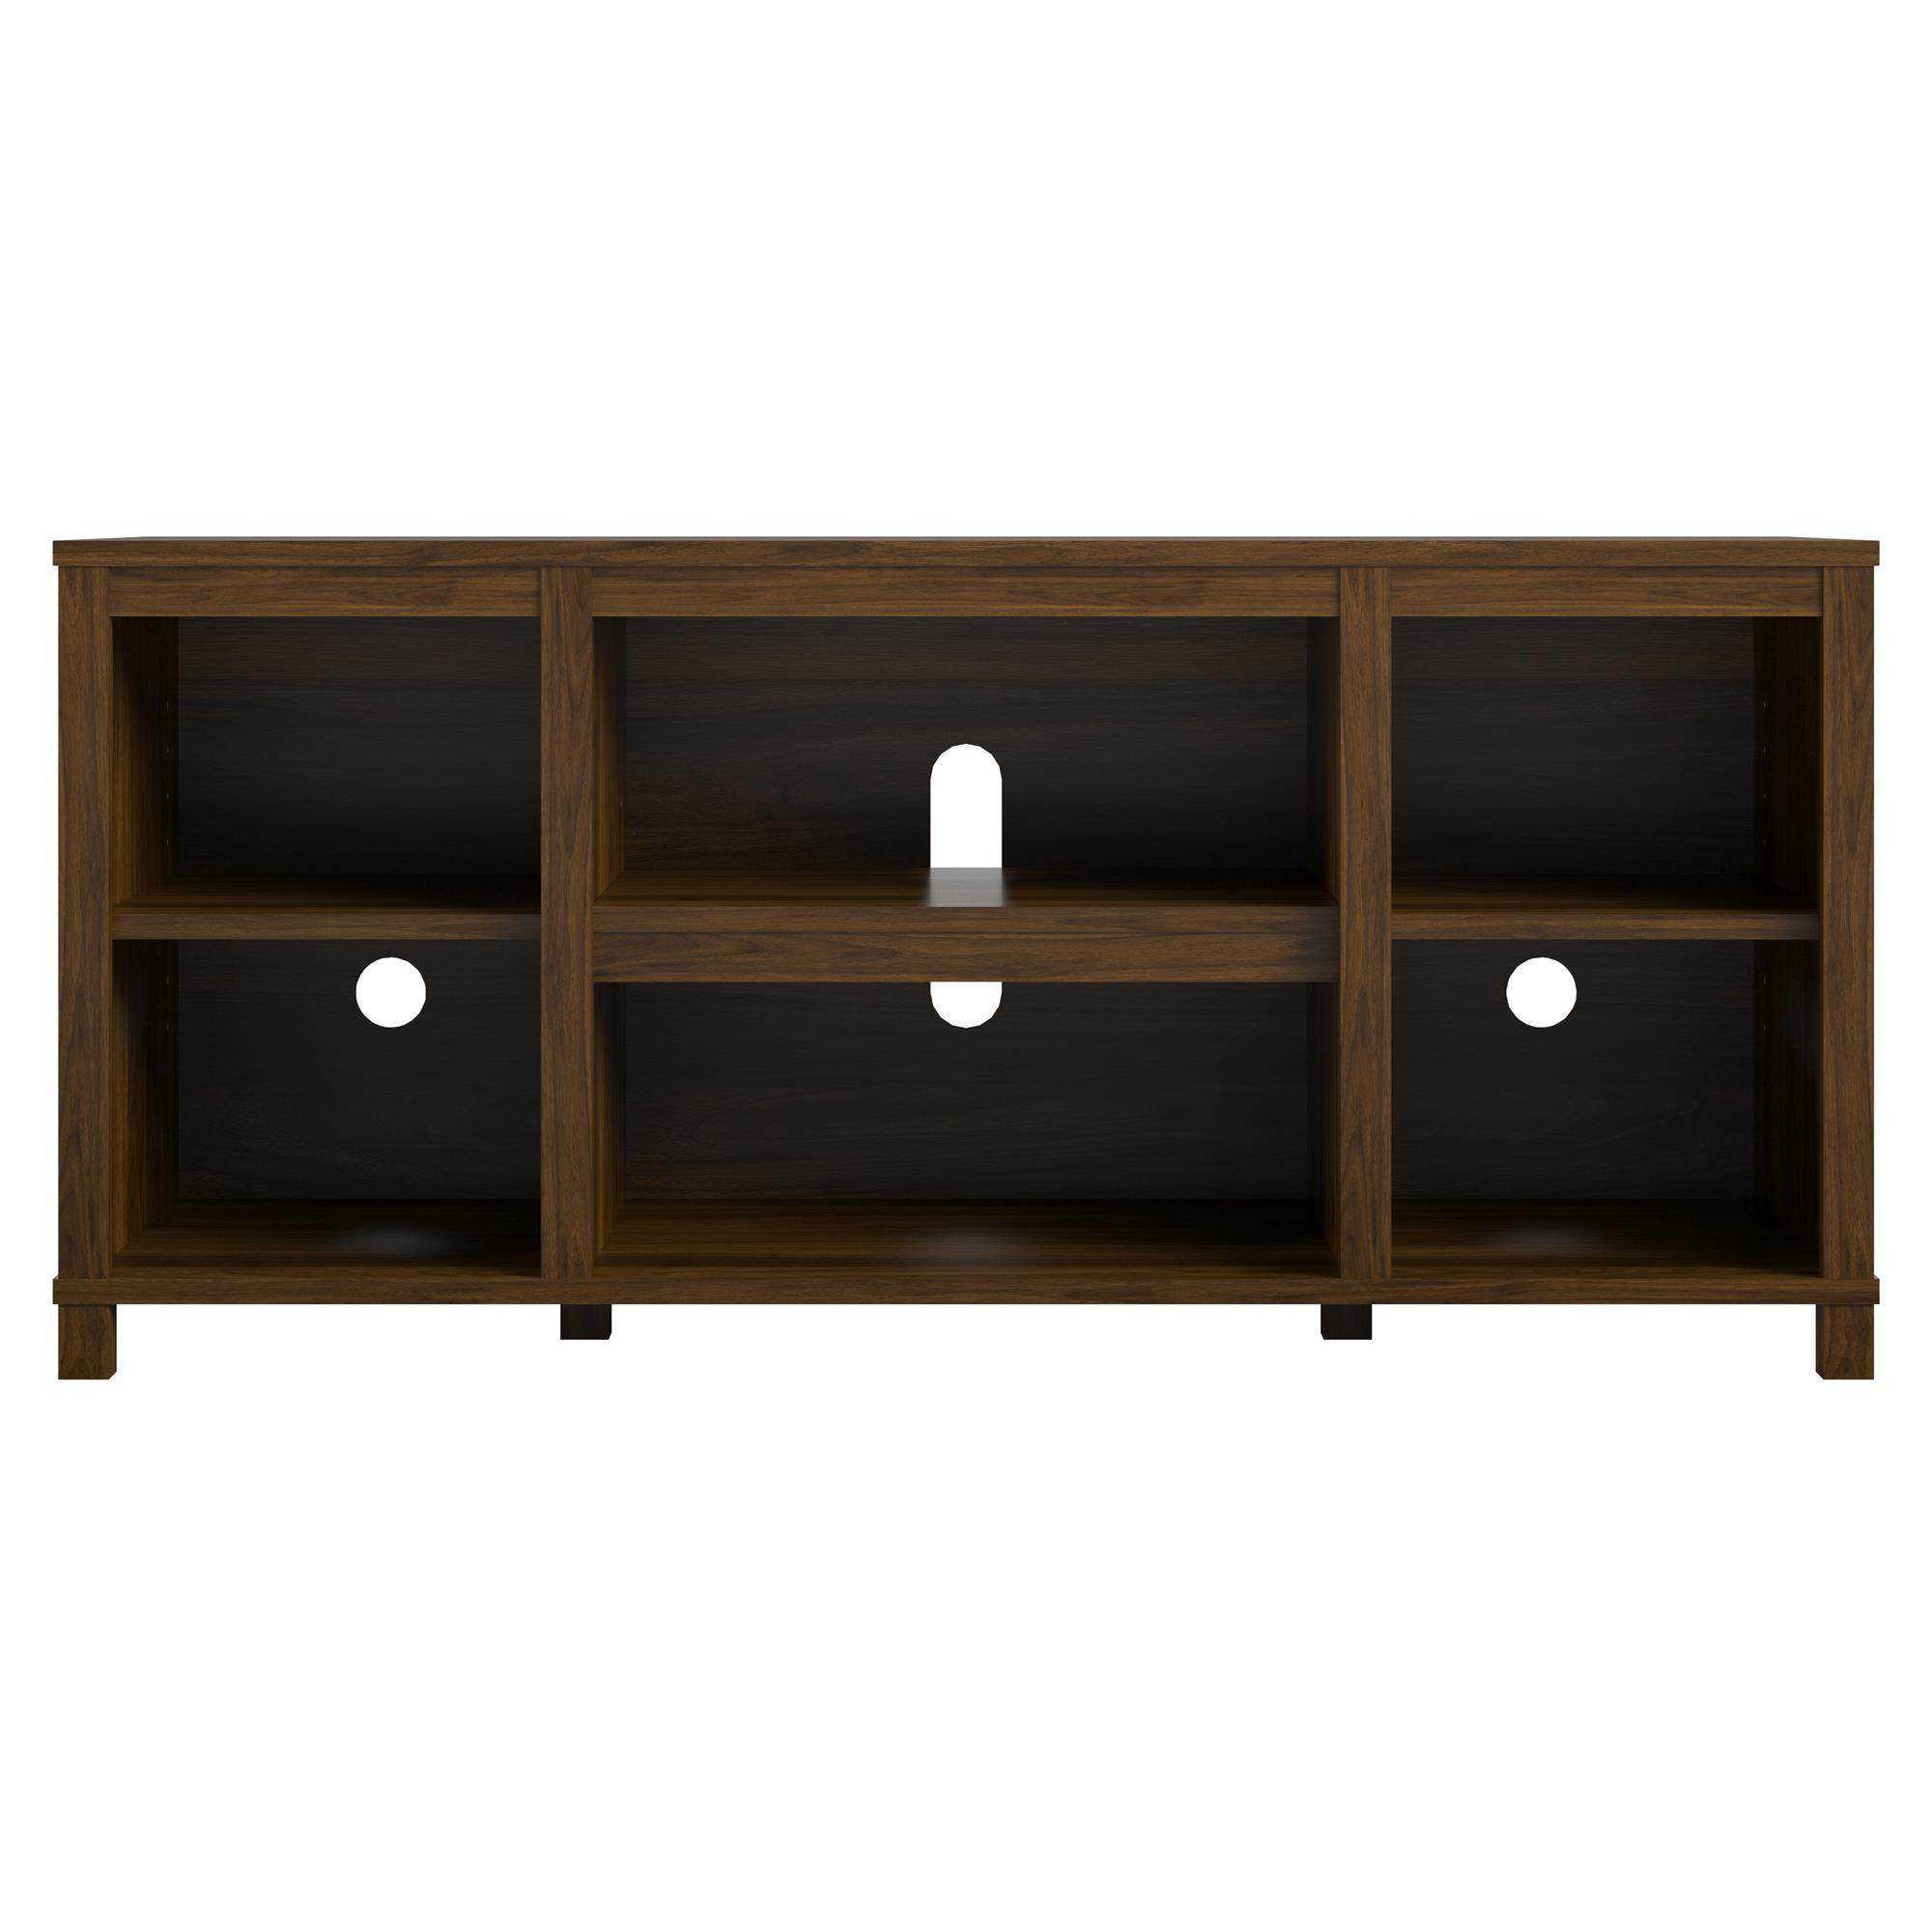 Mainstays Parsons Cubby Tv Stand For Tvs Up To 50 True Black Oak Walmart Com Walmart Com